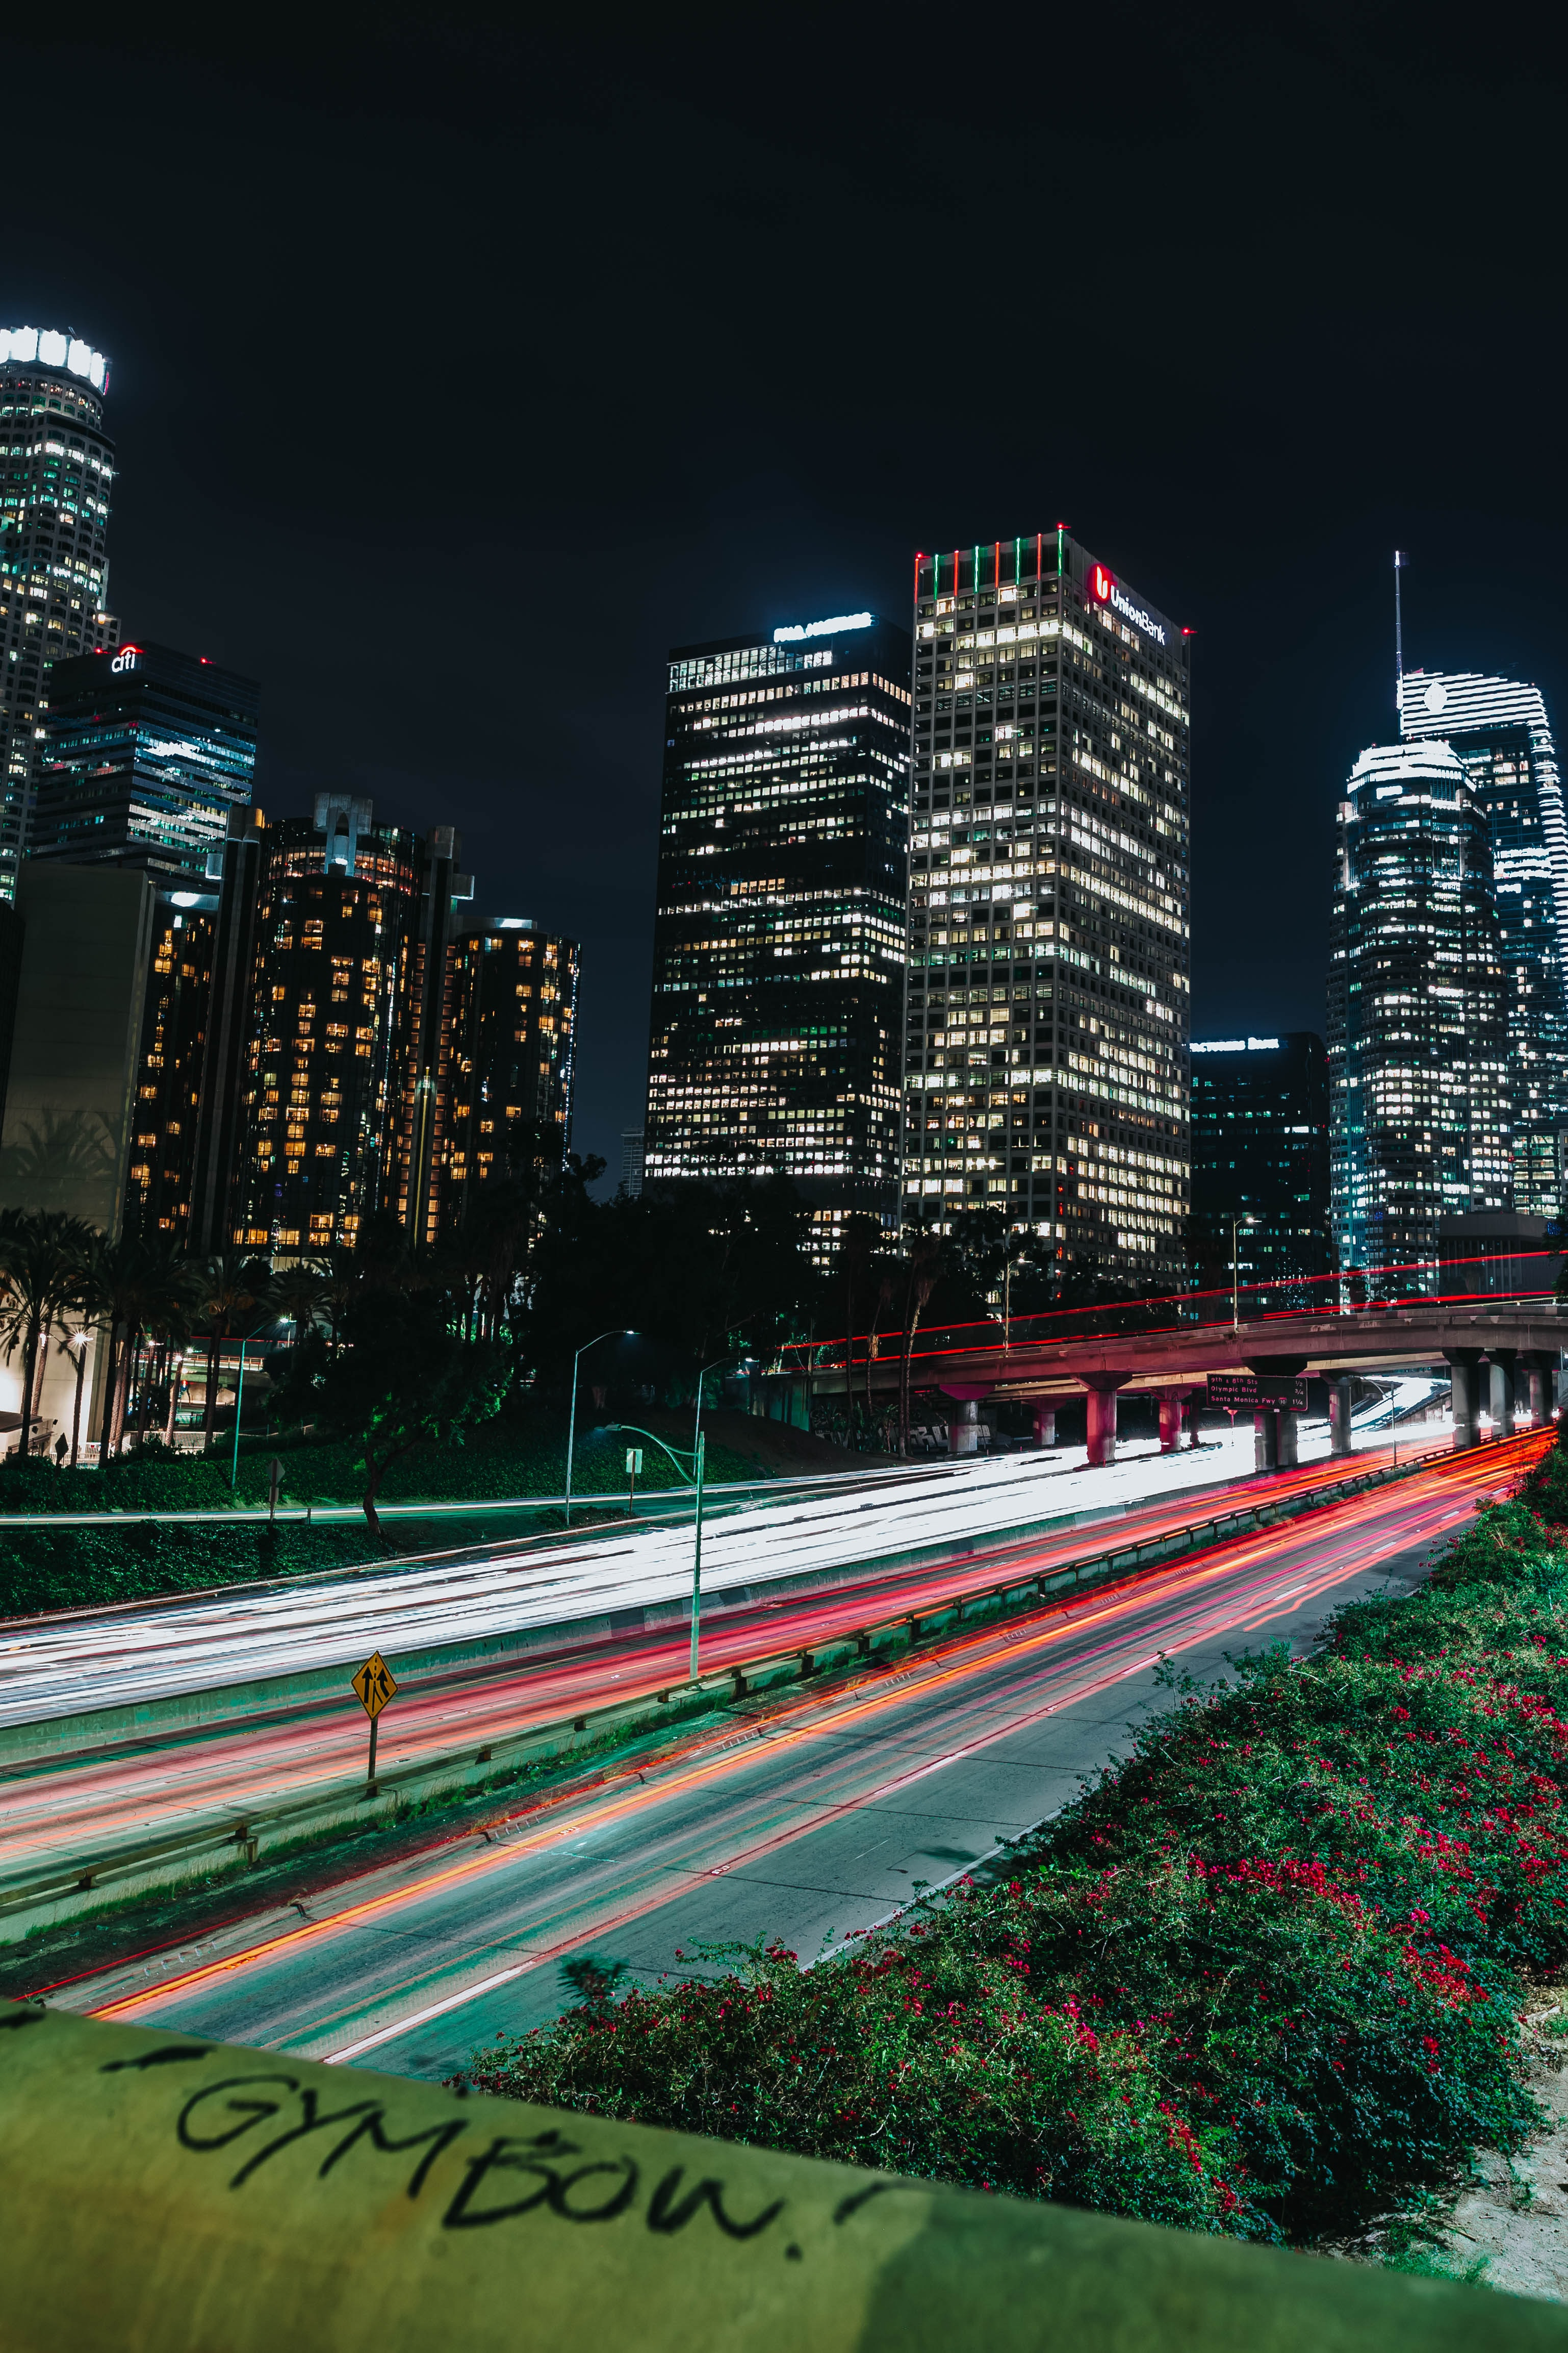 time lapse photography of buildings and road at night